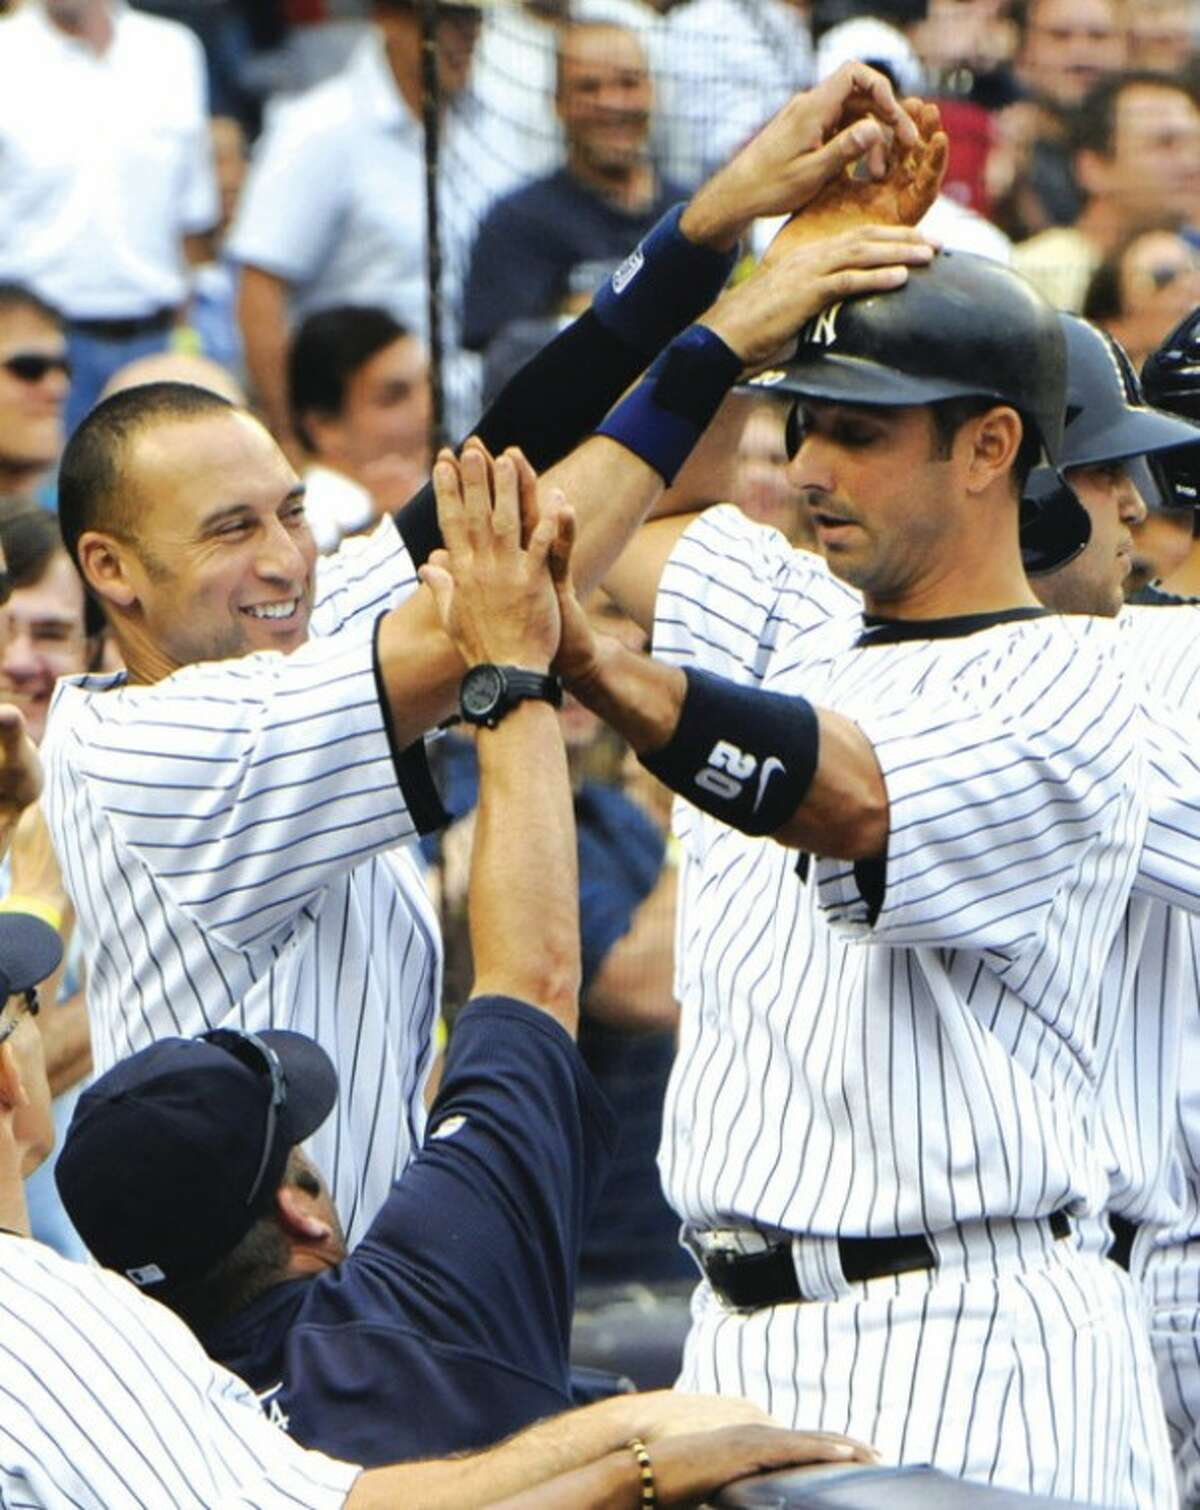 @White=[C] AP photo Jorge Posada, right, high-fives with Derek Jeter and hitting coach Kevin Long, bottom left, after hitting a grand slam during the fifth inning of Saturday's 9-2 win by the Yankees over the Tampa Bay Rays.